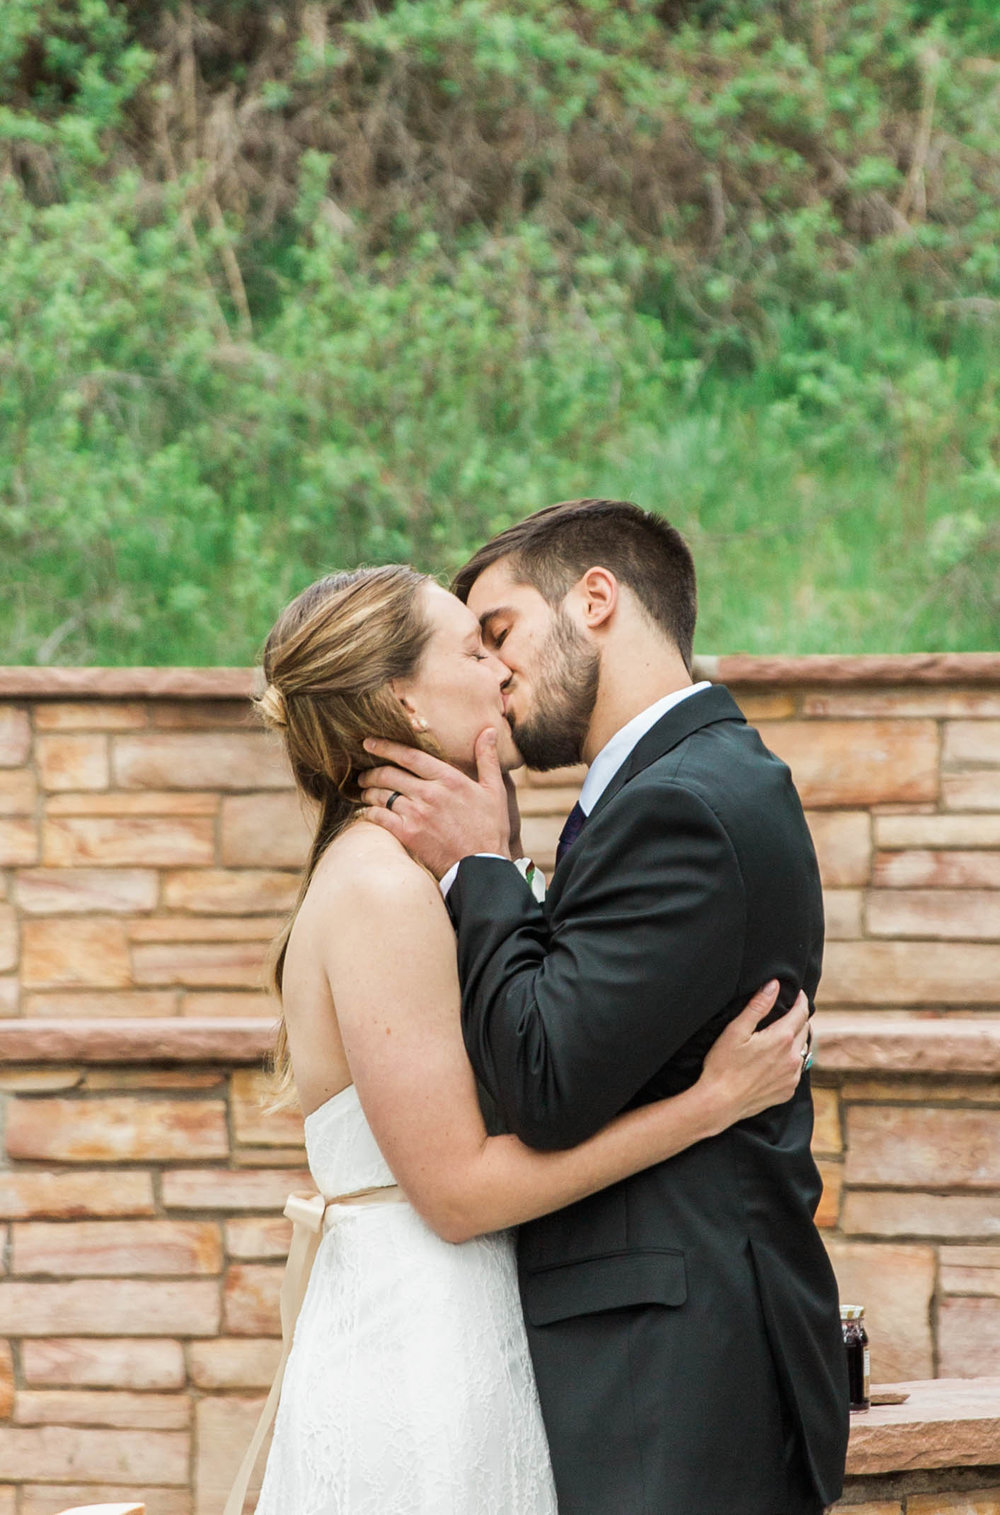 rocky mountain colorado new mexico aspen colorado springs denver wedding engagement elopment photography photographer